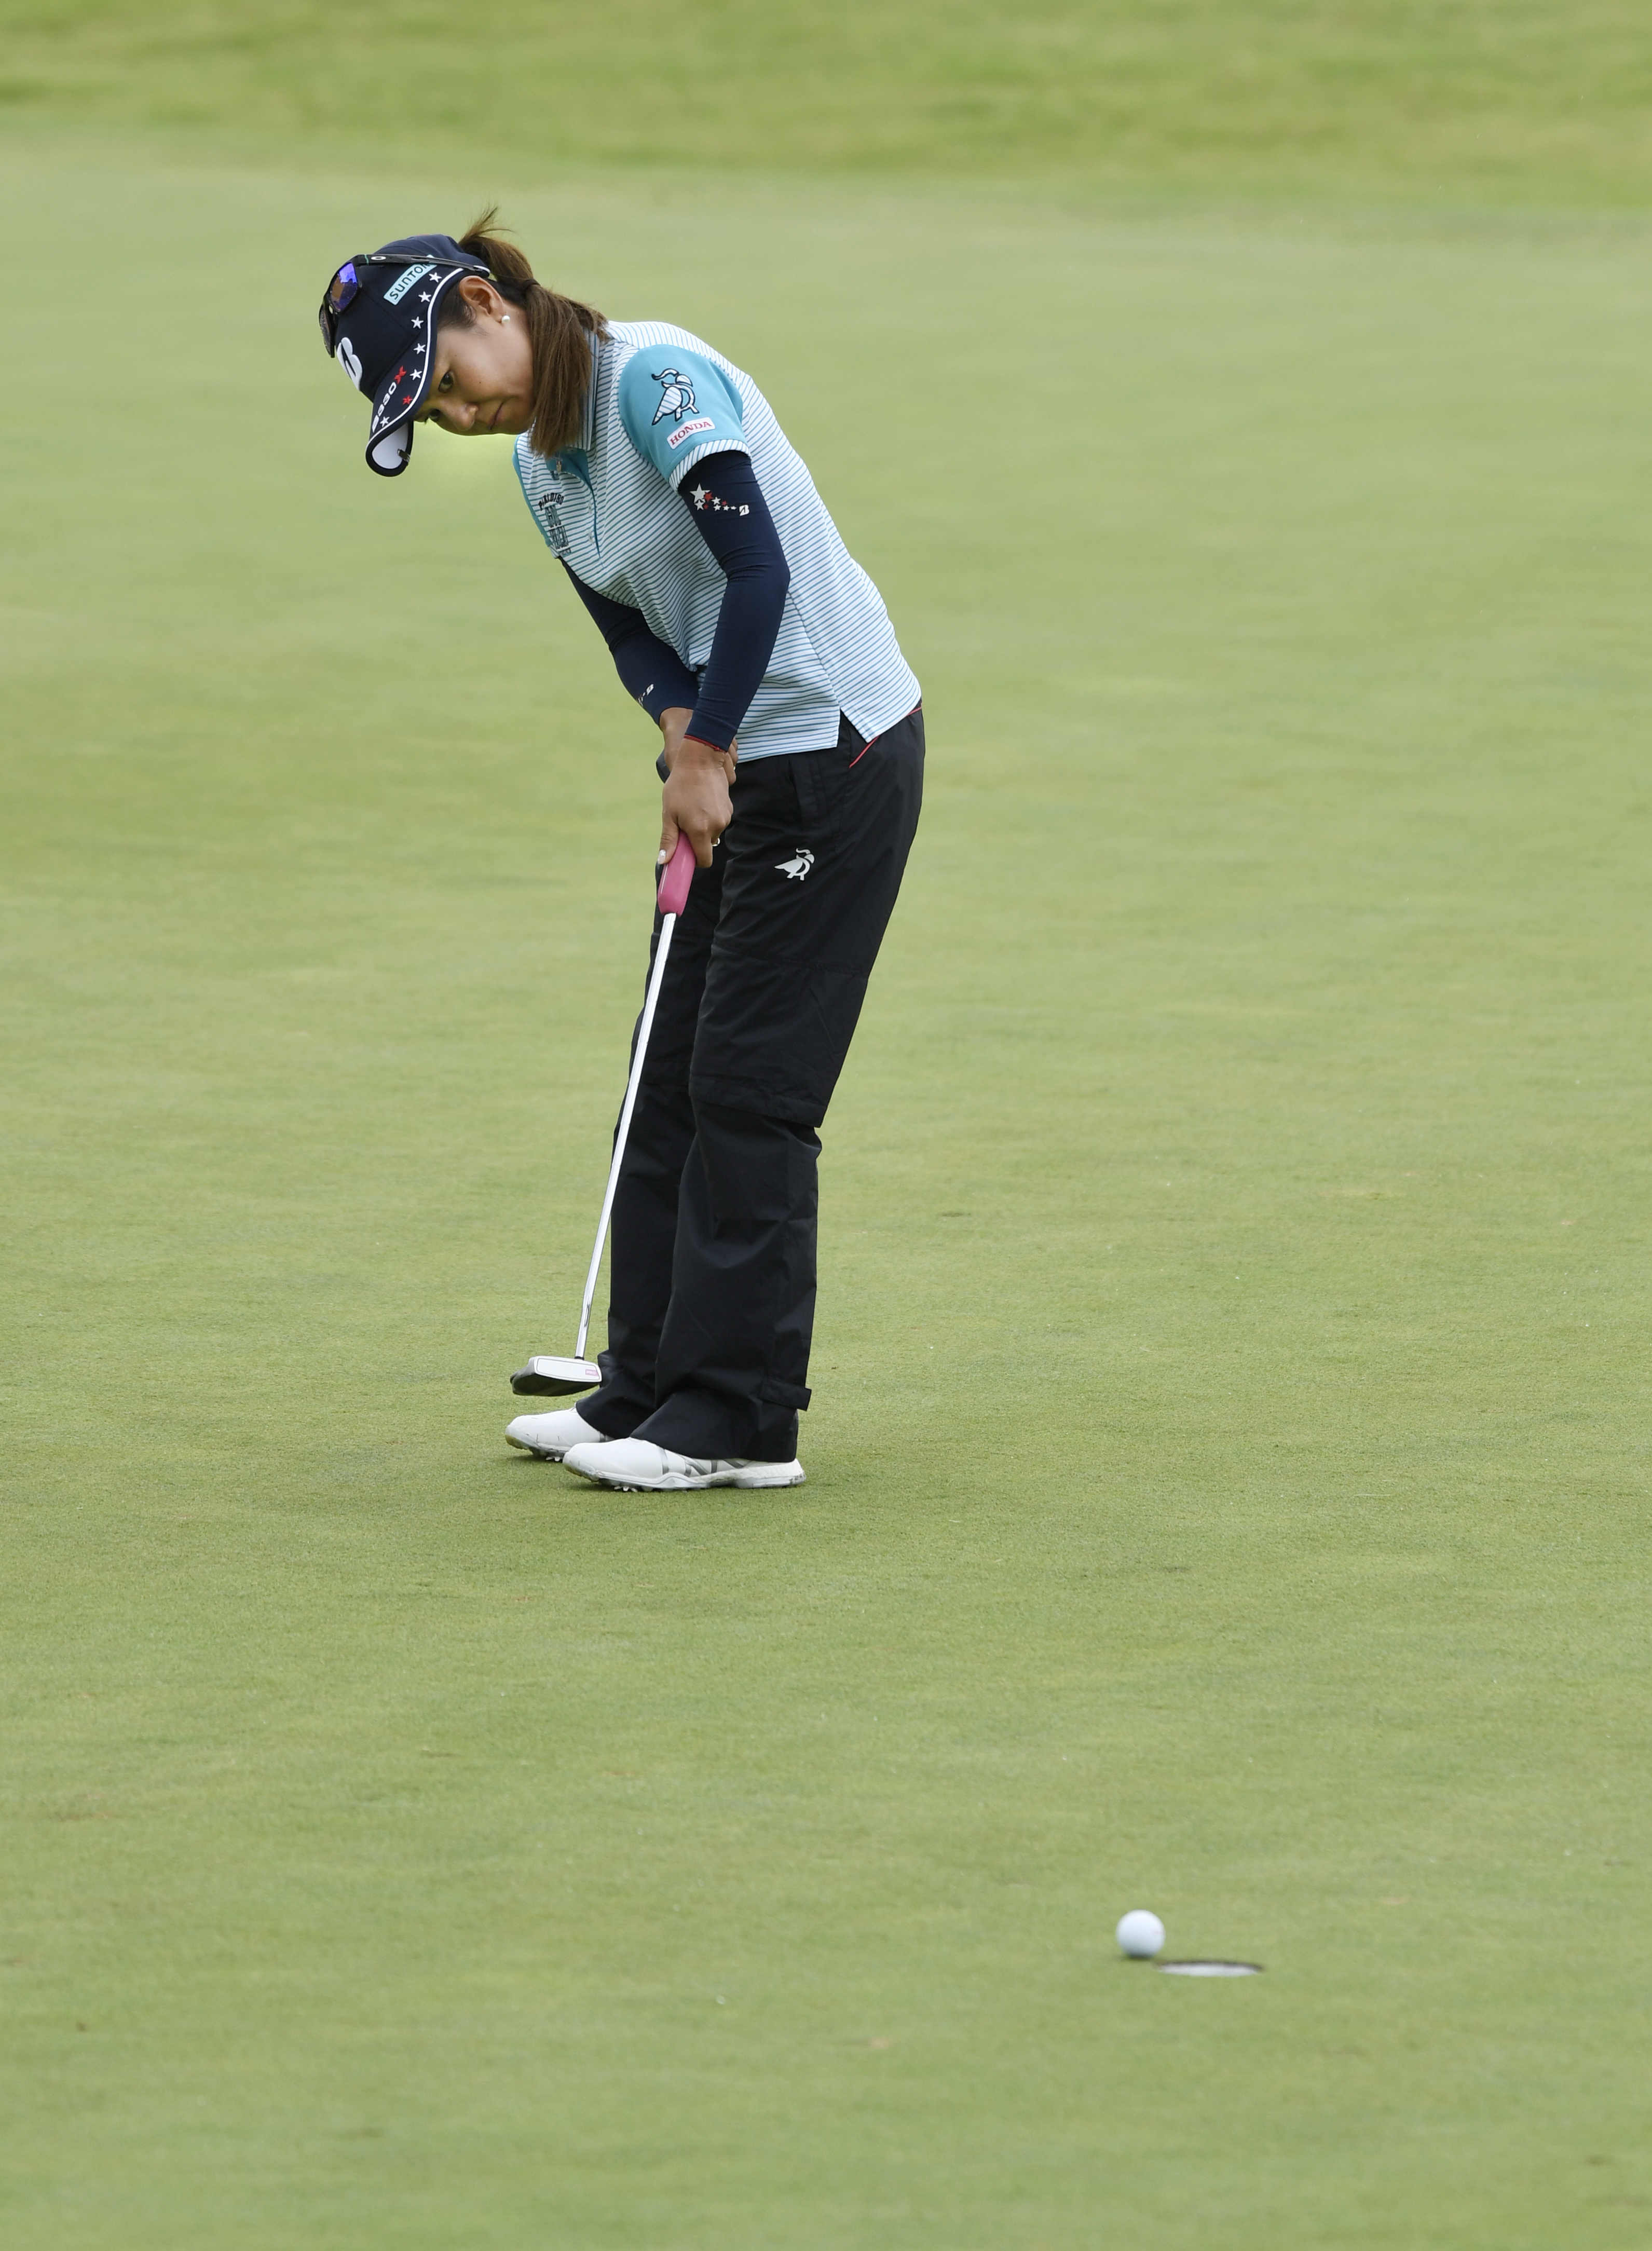 CORRECTS YEAR TO 2017 NOT 2016 - Ai Miyazato, of Japan, watches her putt just miss on the second hole during the LPGA Wal-Mart NW Arkansas Championship golf tournament at Pinnacle Country Club in Rogers, Ark., Friday, June 23, 2017. (AP Photo/Michael Wood